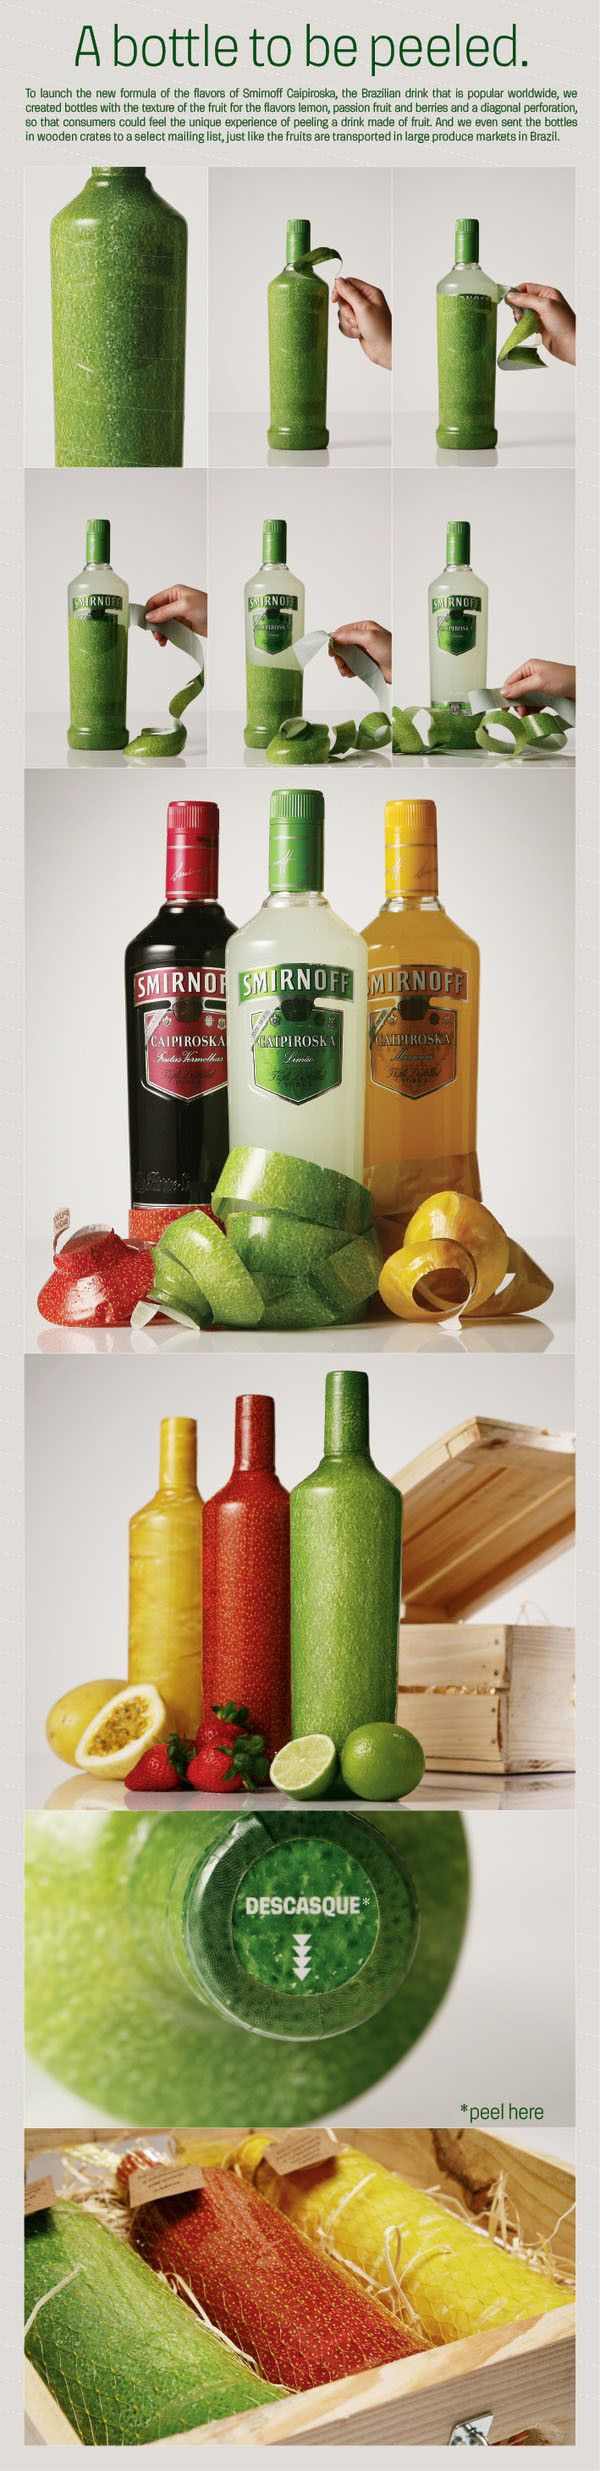 스미노프 패키지Smirnoff Caipiroska packaging